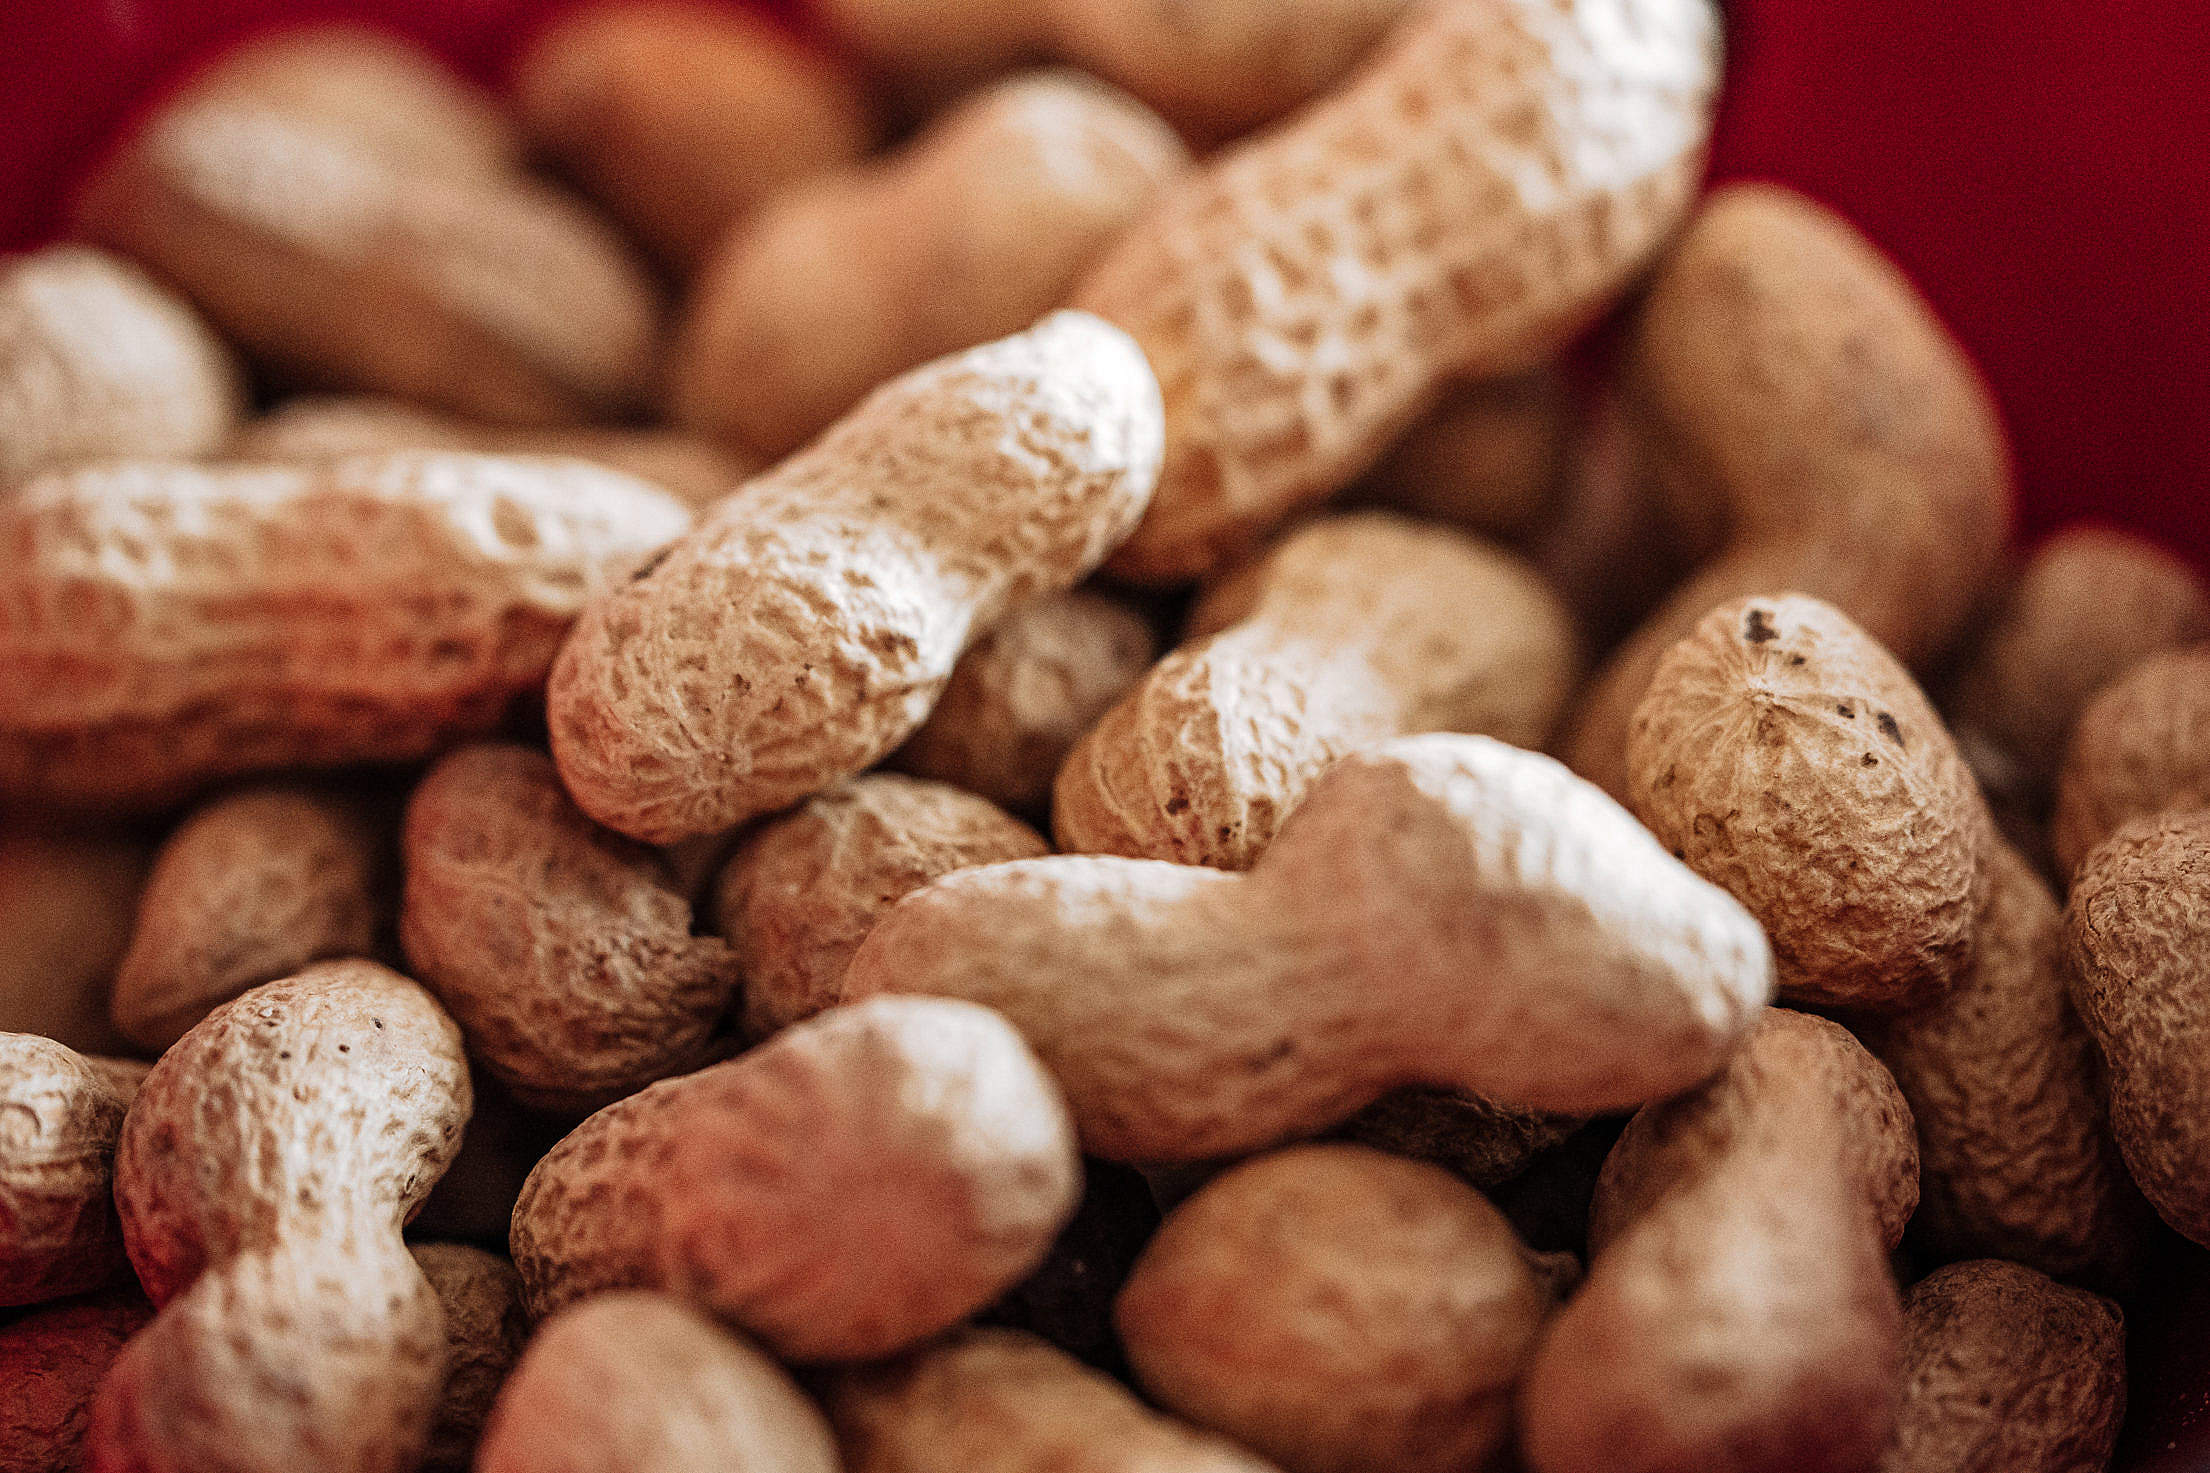 Peanuts in a Bowl Free Stock Photo